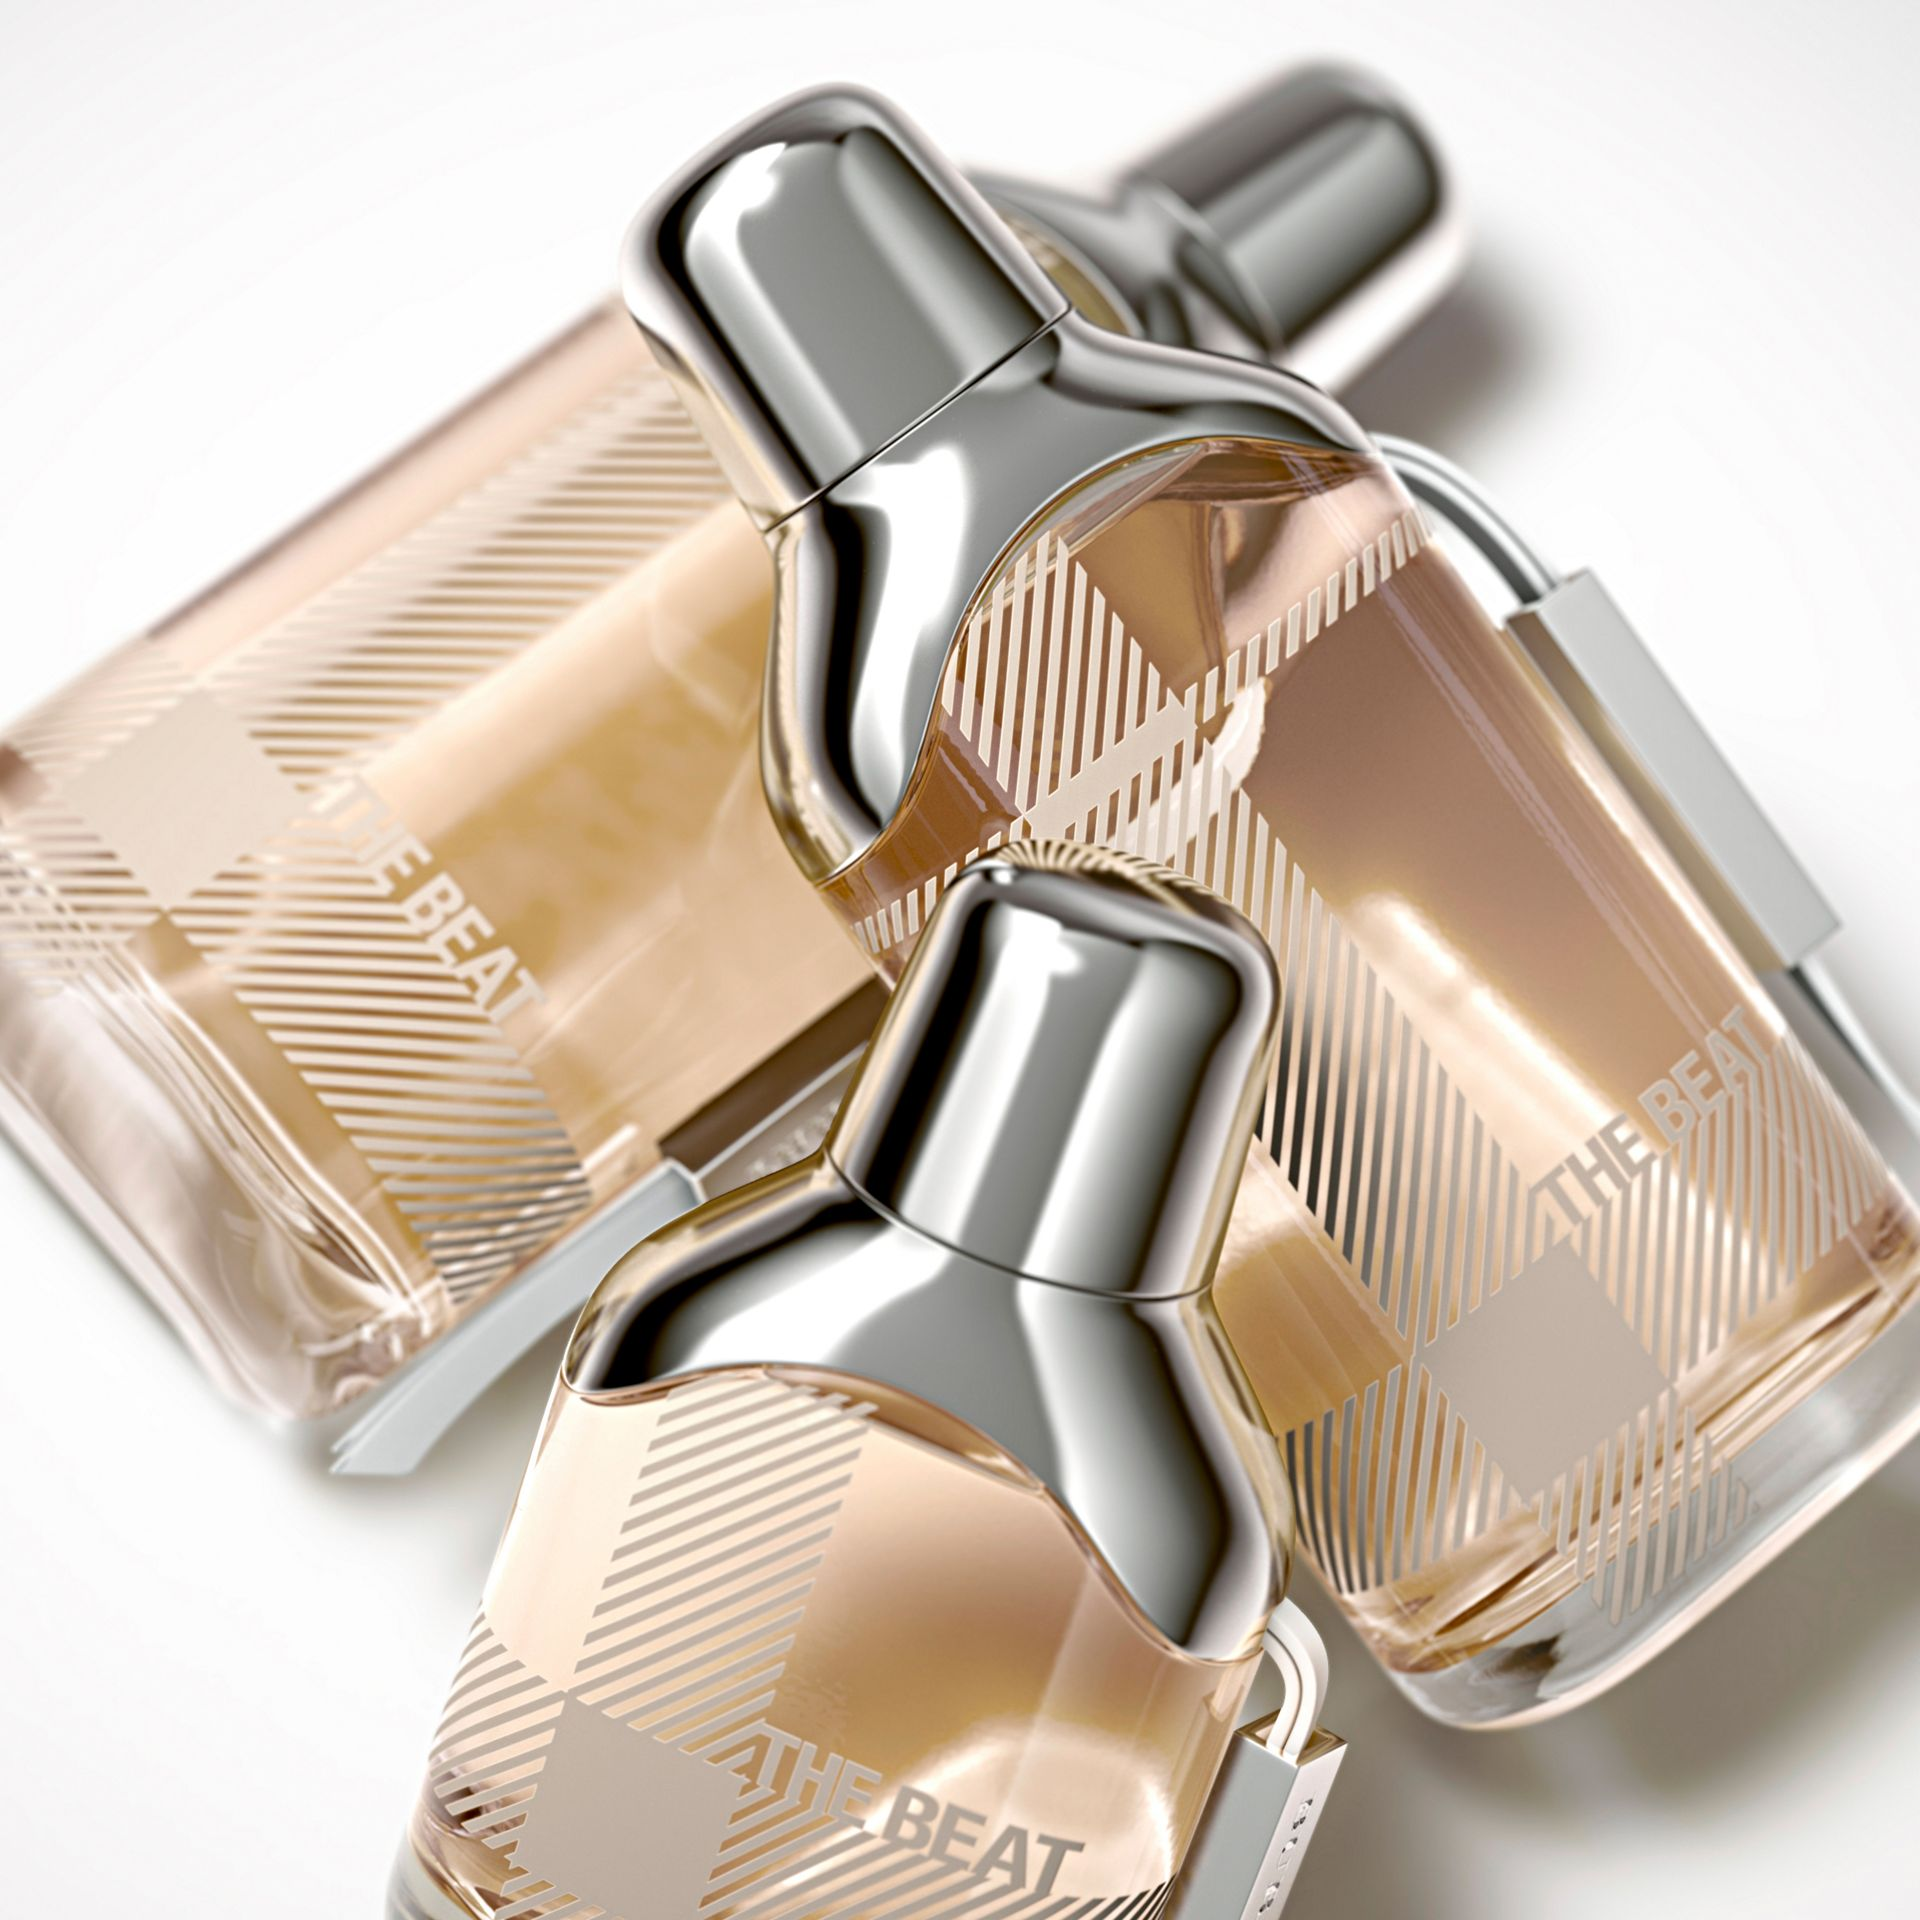 Burberry The Beat Eau de Parfum 75 ml - immagine della galleria 2